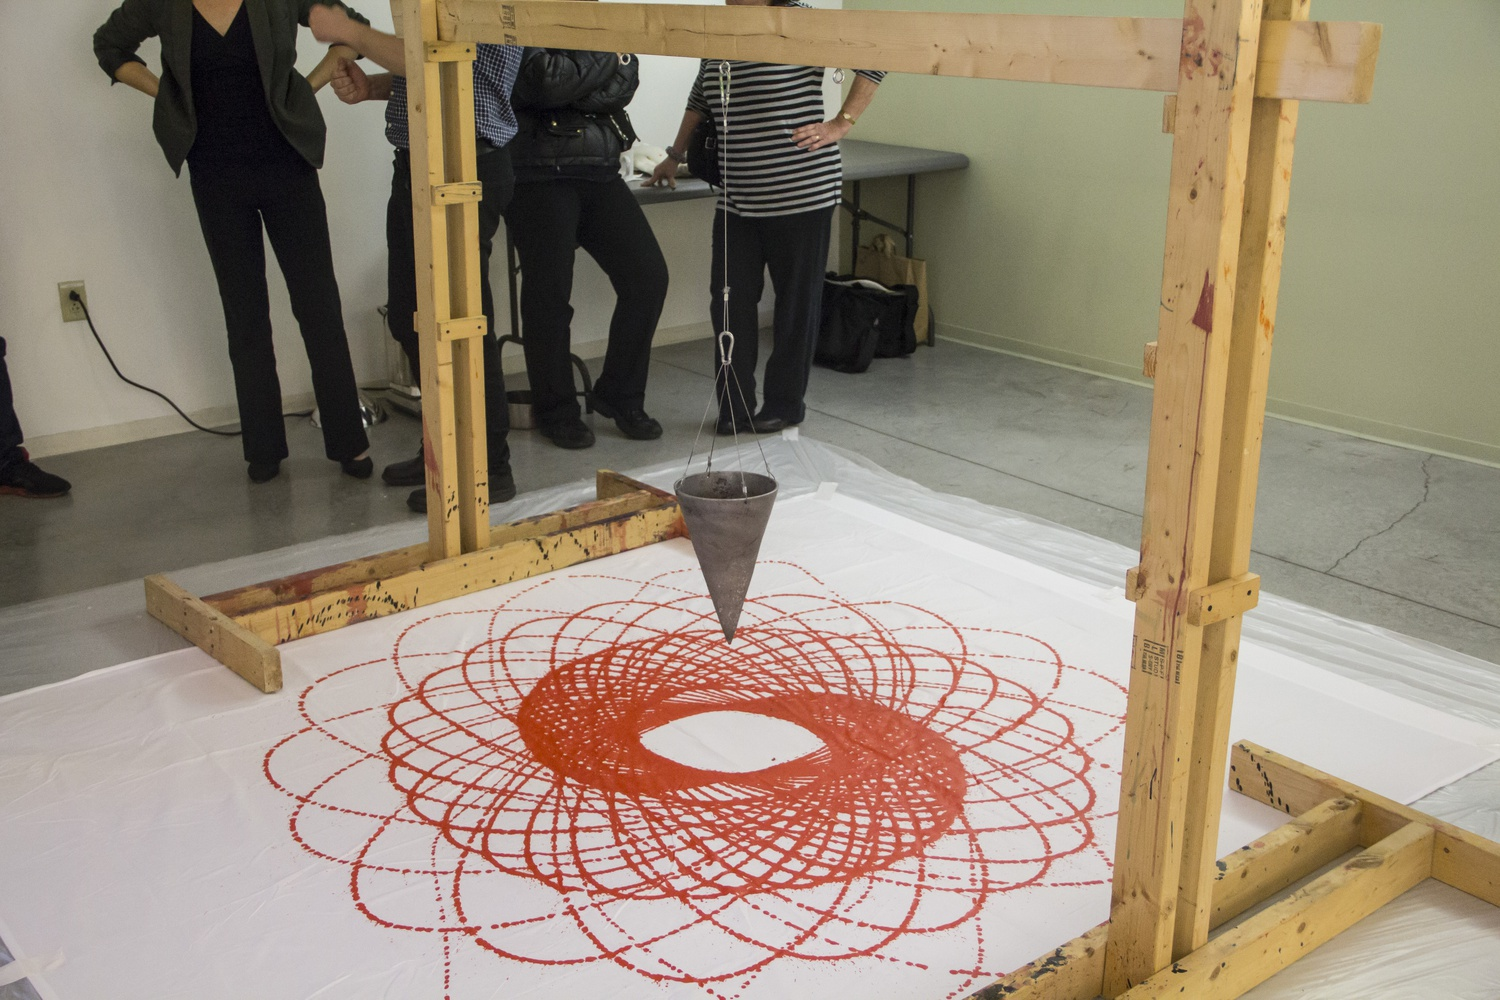 An interactive kinetic sculpture by Kim Bernard, a visiting Artist-in-Residence in the Physics department, shows how the laws of physics can be applied to create beautiful art forms Thursday evening at 29 Garden Street.